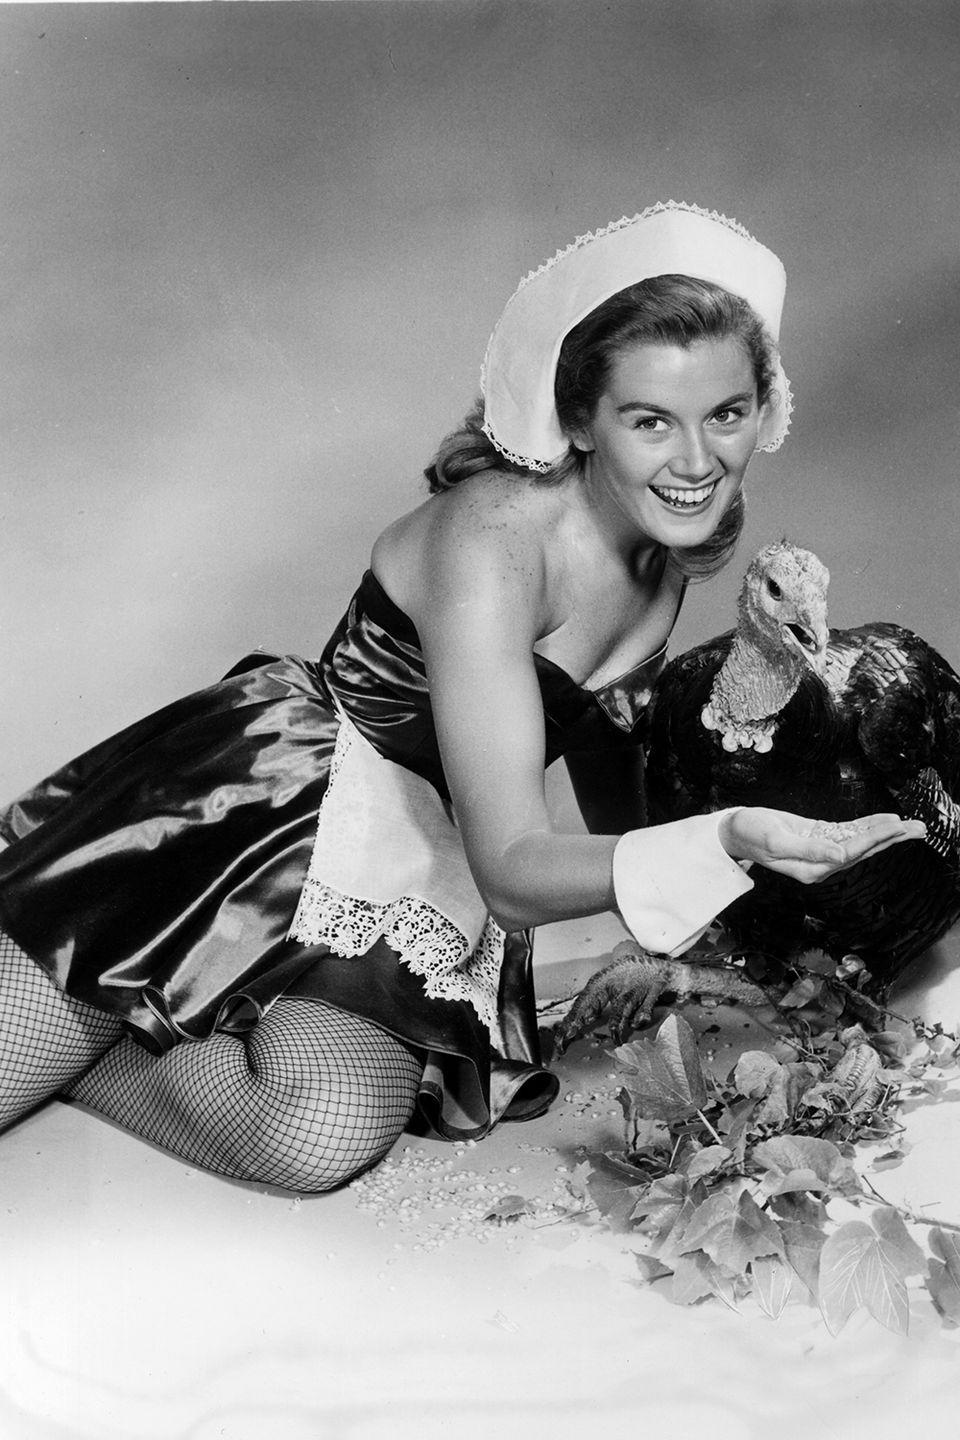 "<p>Pin-up photo shoots with Puritan-inspired outfits and live turkeys weren't uncommon in the '50s and '60s. Hollywood stars like <a href=""https://www.goodhousekeeping.com/life/entertainment/g28378198/rare-photos-of-marilyn-monroe/"" rel=""nofollow noopener"" target=""_blank"" data-ylk=""slk:Marilyn Monroe"" class=""link rapid-noclick-resp"">Marilyn Monroe</a> and Kathleen Nolan posed for such shots to be featured in Thanksgiving magazine spreads.</p>"